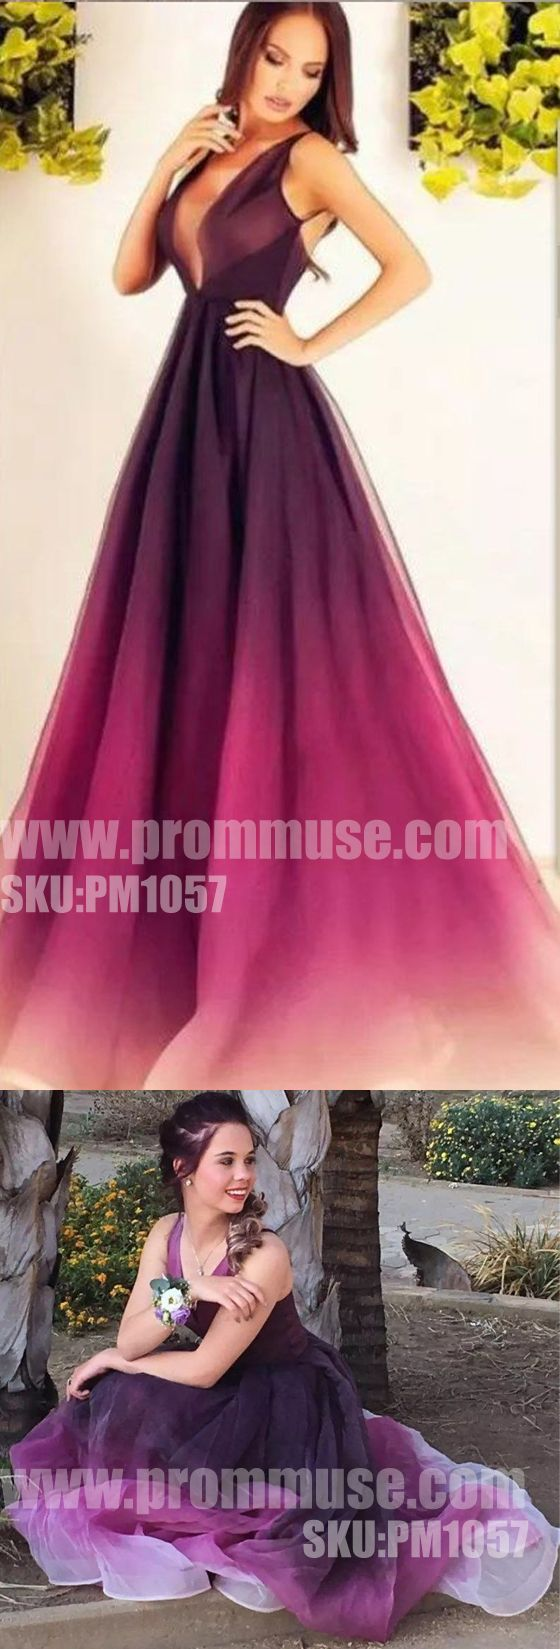 Popular Gradient Formal Sexy Evening Party Cheap Long Prom Dresses, PM1057